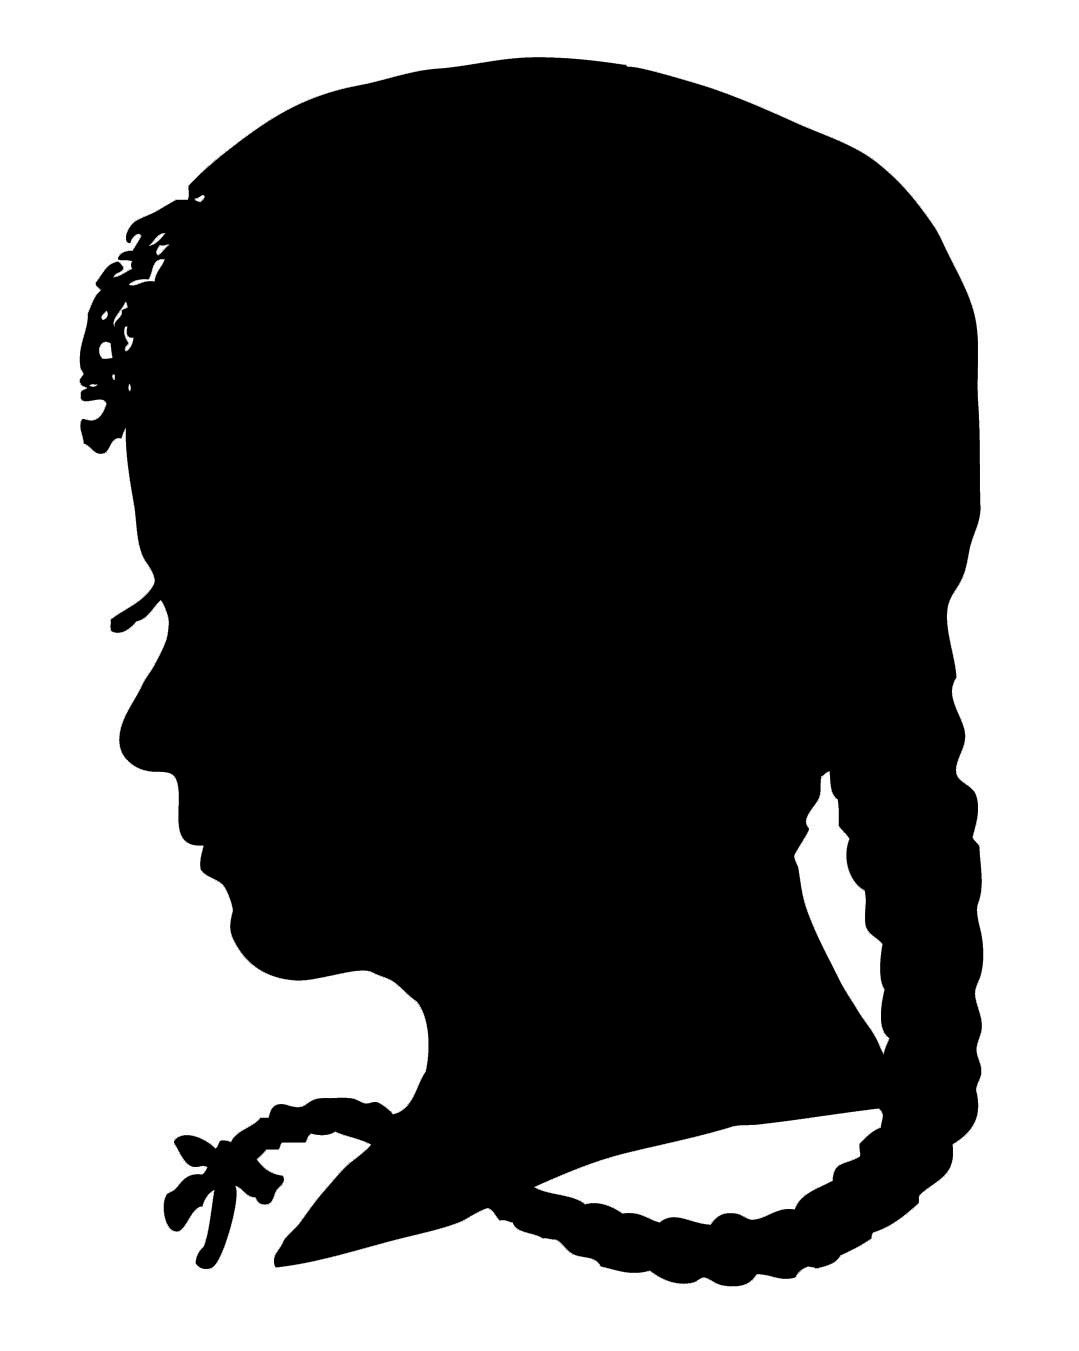 Vintige ladies silhouette clipart banner library download Vintage Clip Art - Silhouette Boy & Girl - The Graphics Fairy banner library download